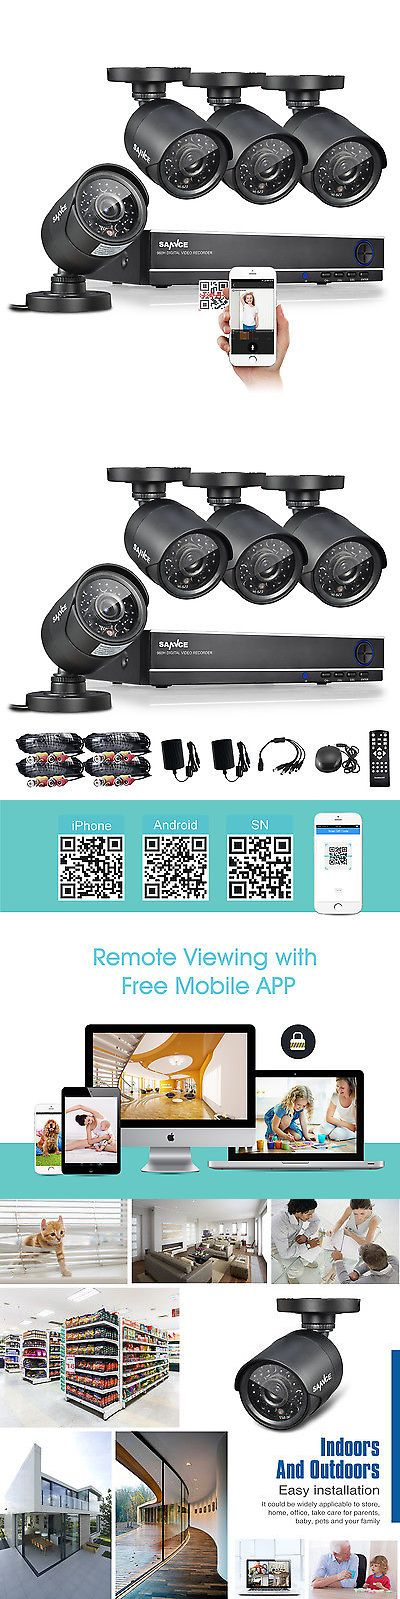 Surveillance Security Systems: Sannce 4Ch 1080N Dvr Video Record 1500Tvl Outdoor Hd Home Security Camera System -> BUY IT NOW ONLY: $89.99 on eBay!